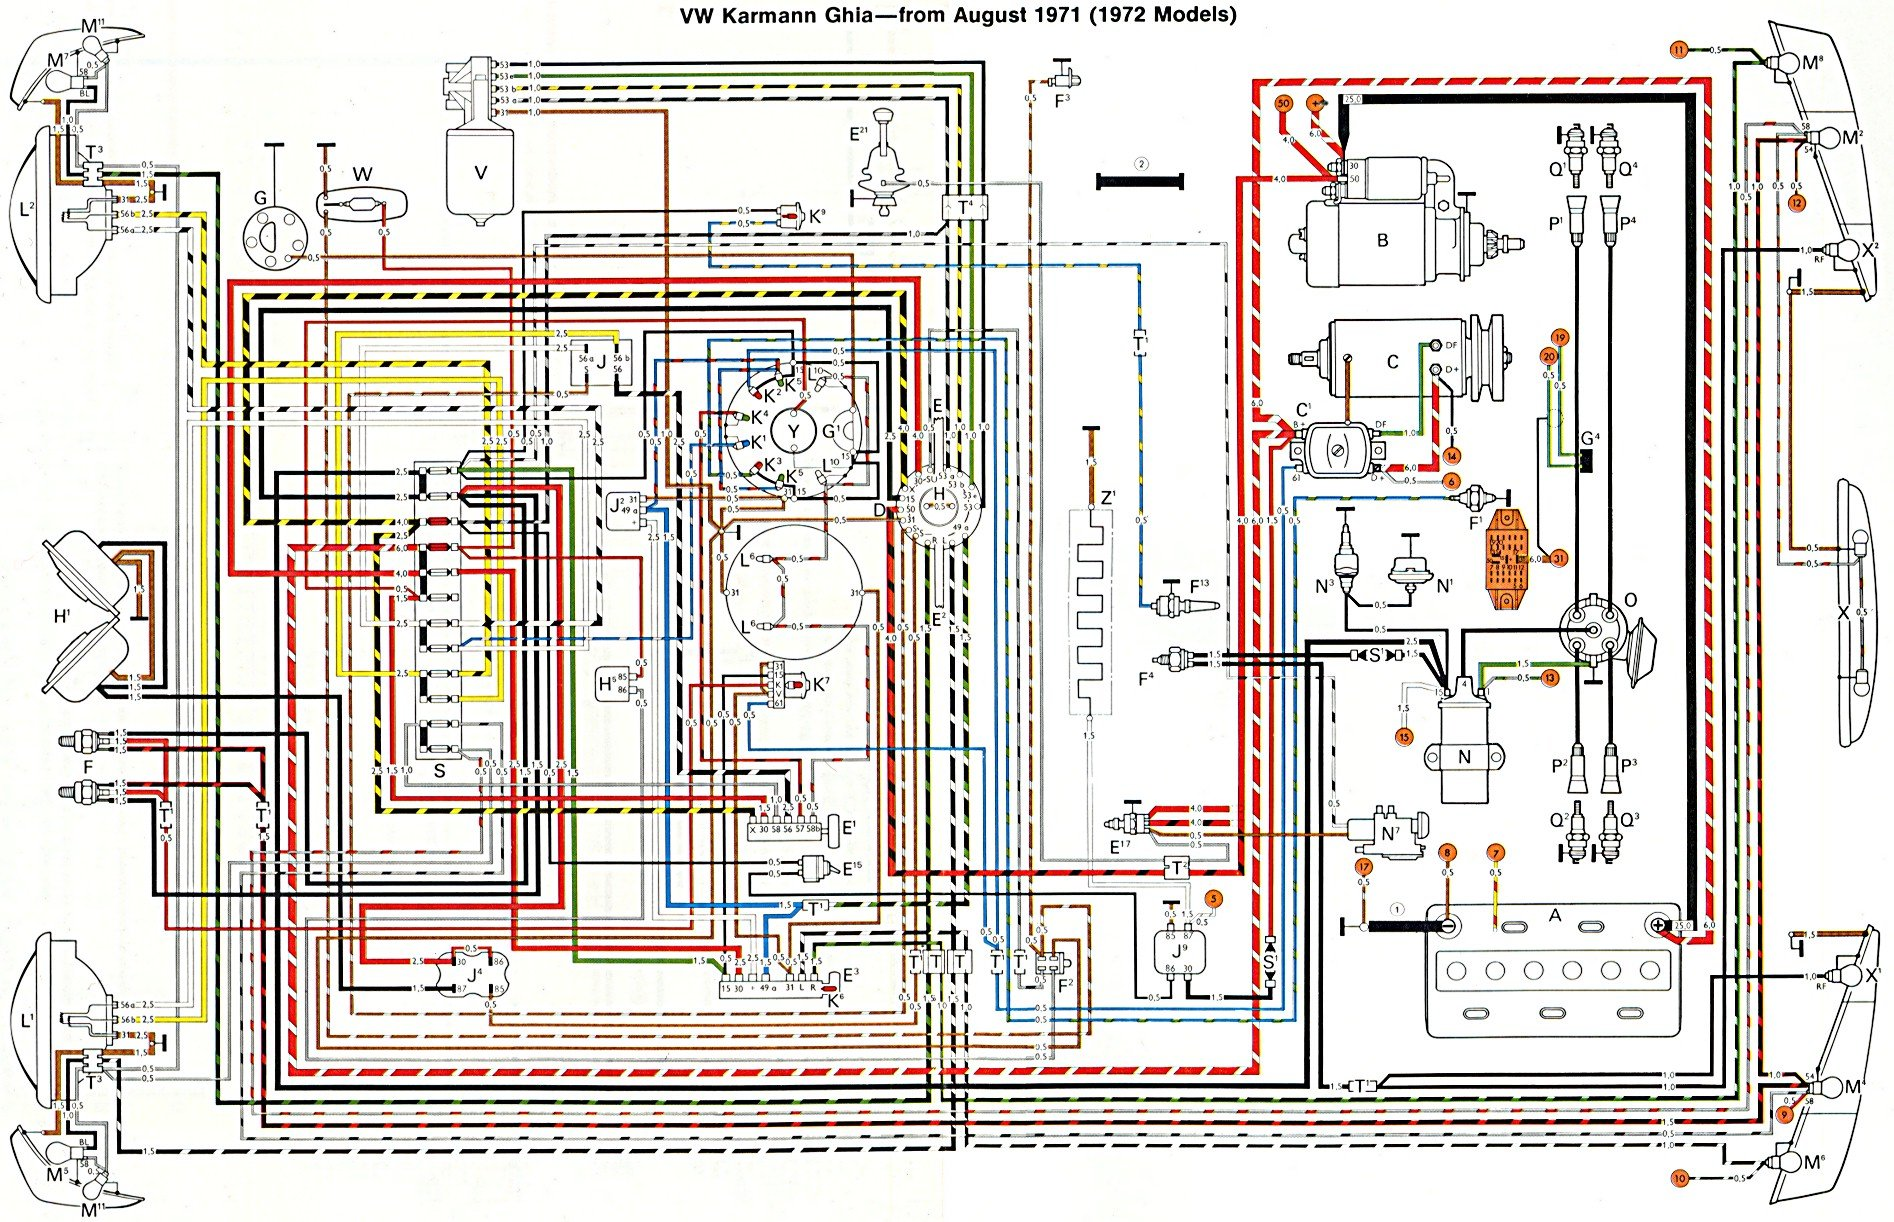 1967 vw karmann ghia wiring diagram thesamba.com :: karmann ghia wiring diagrams #2